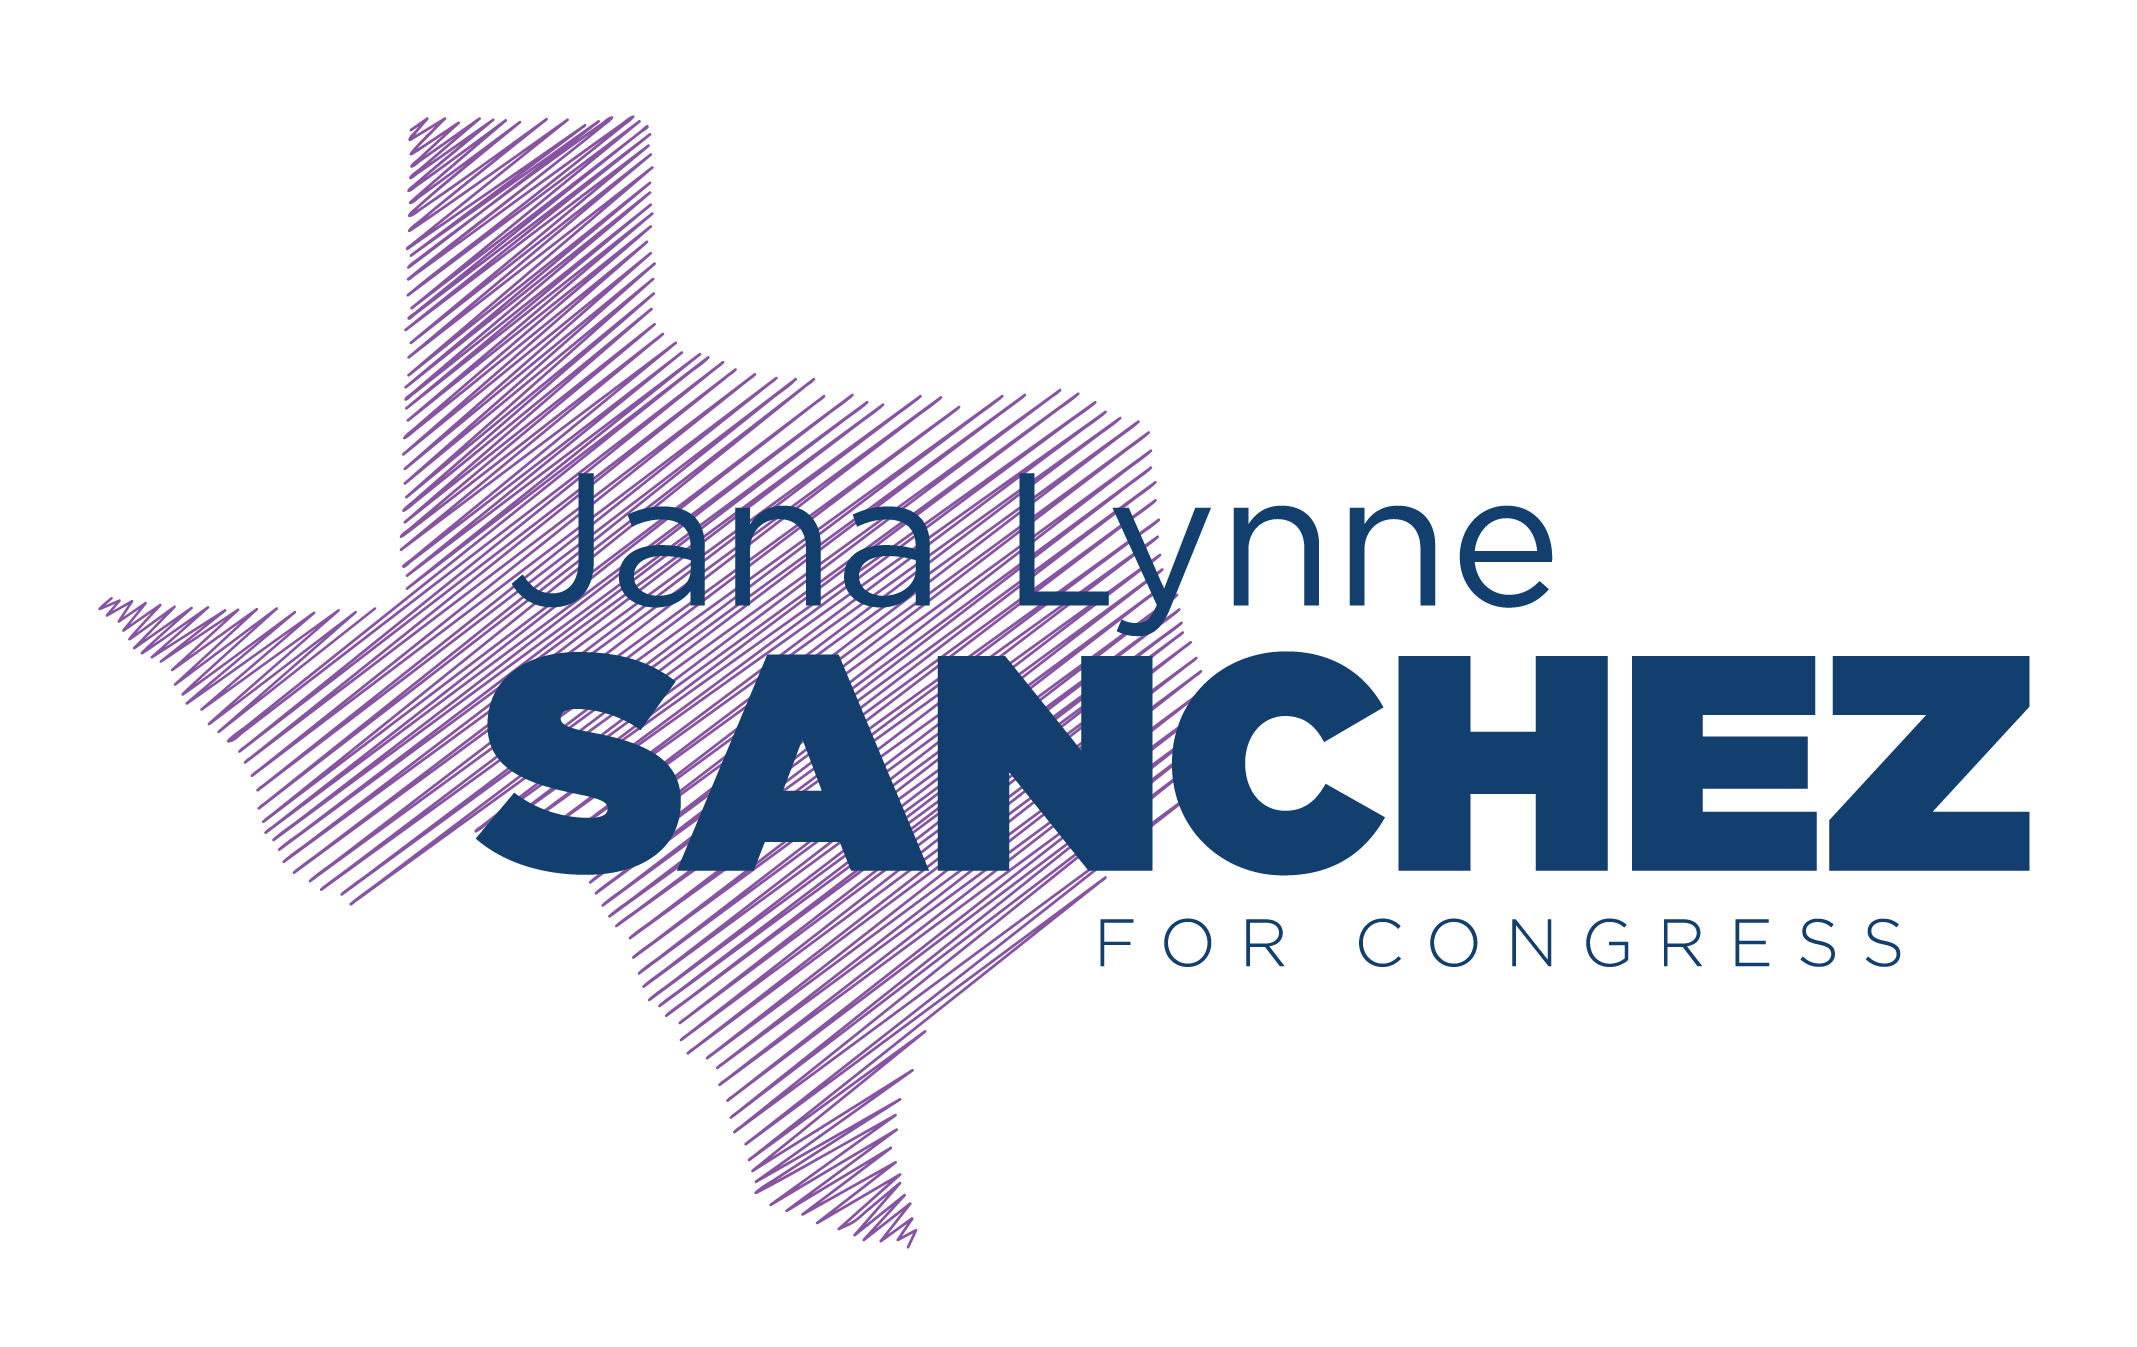 Jana Lynne Sanchez for Congress